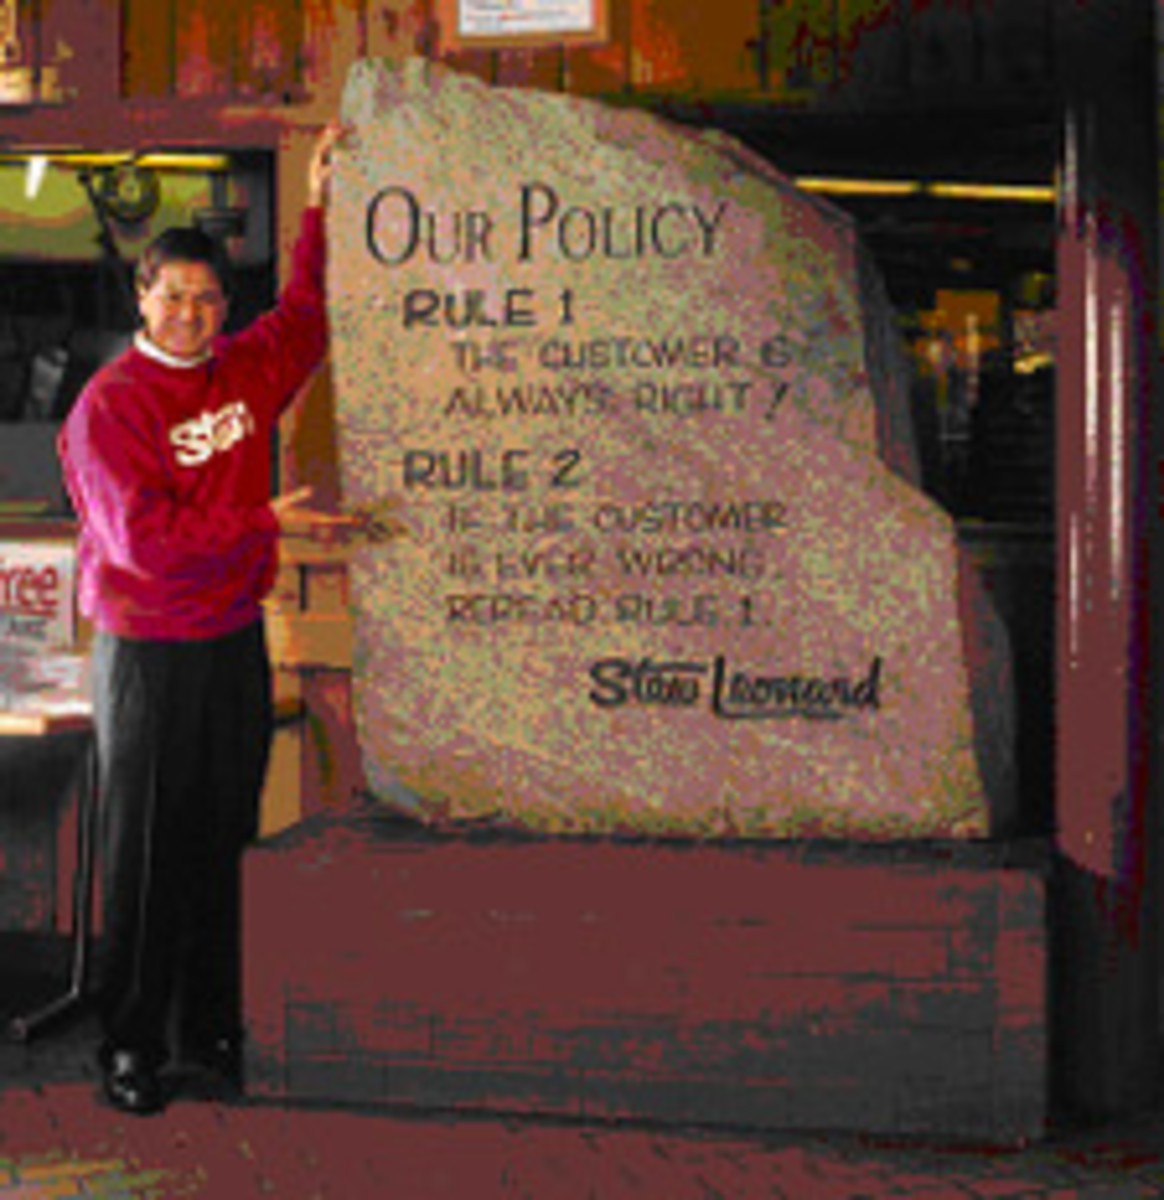 Stew Leonard's Rock Policy: Rule 1: The Customer Is Always Right. Rule 2: If the Customer Is Ever Wrong, Reread Rule 1